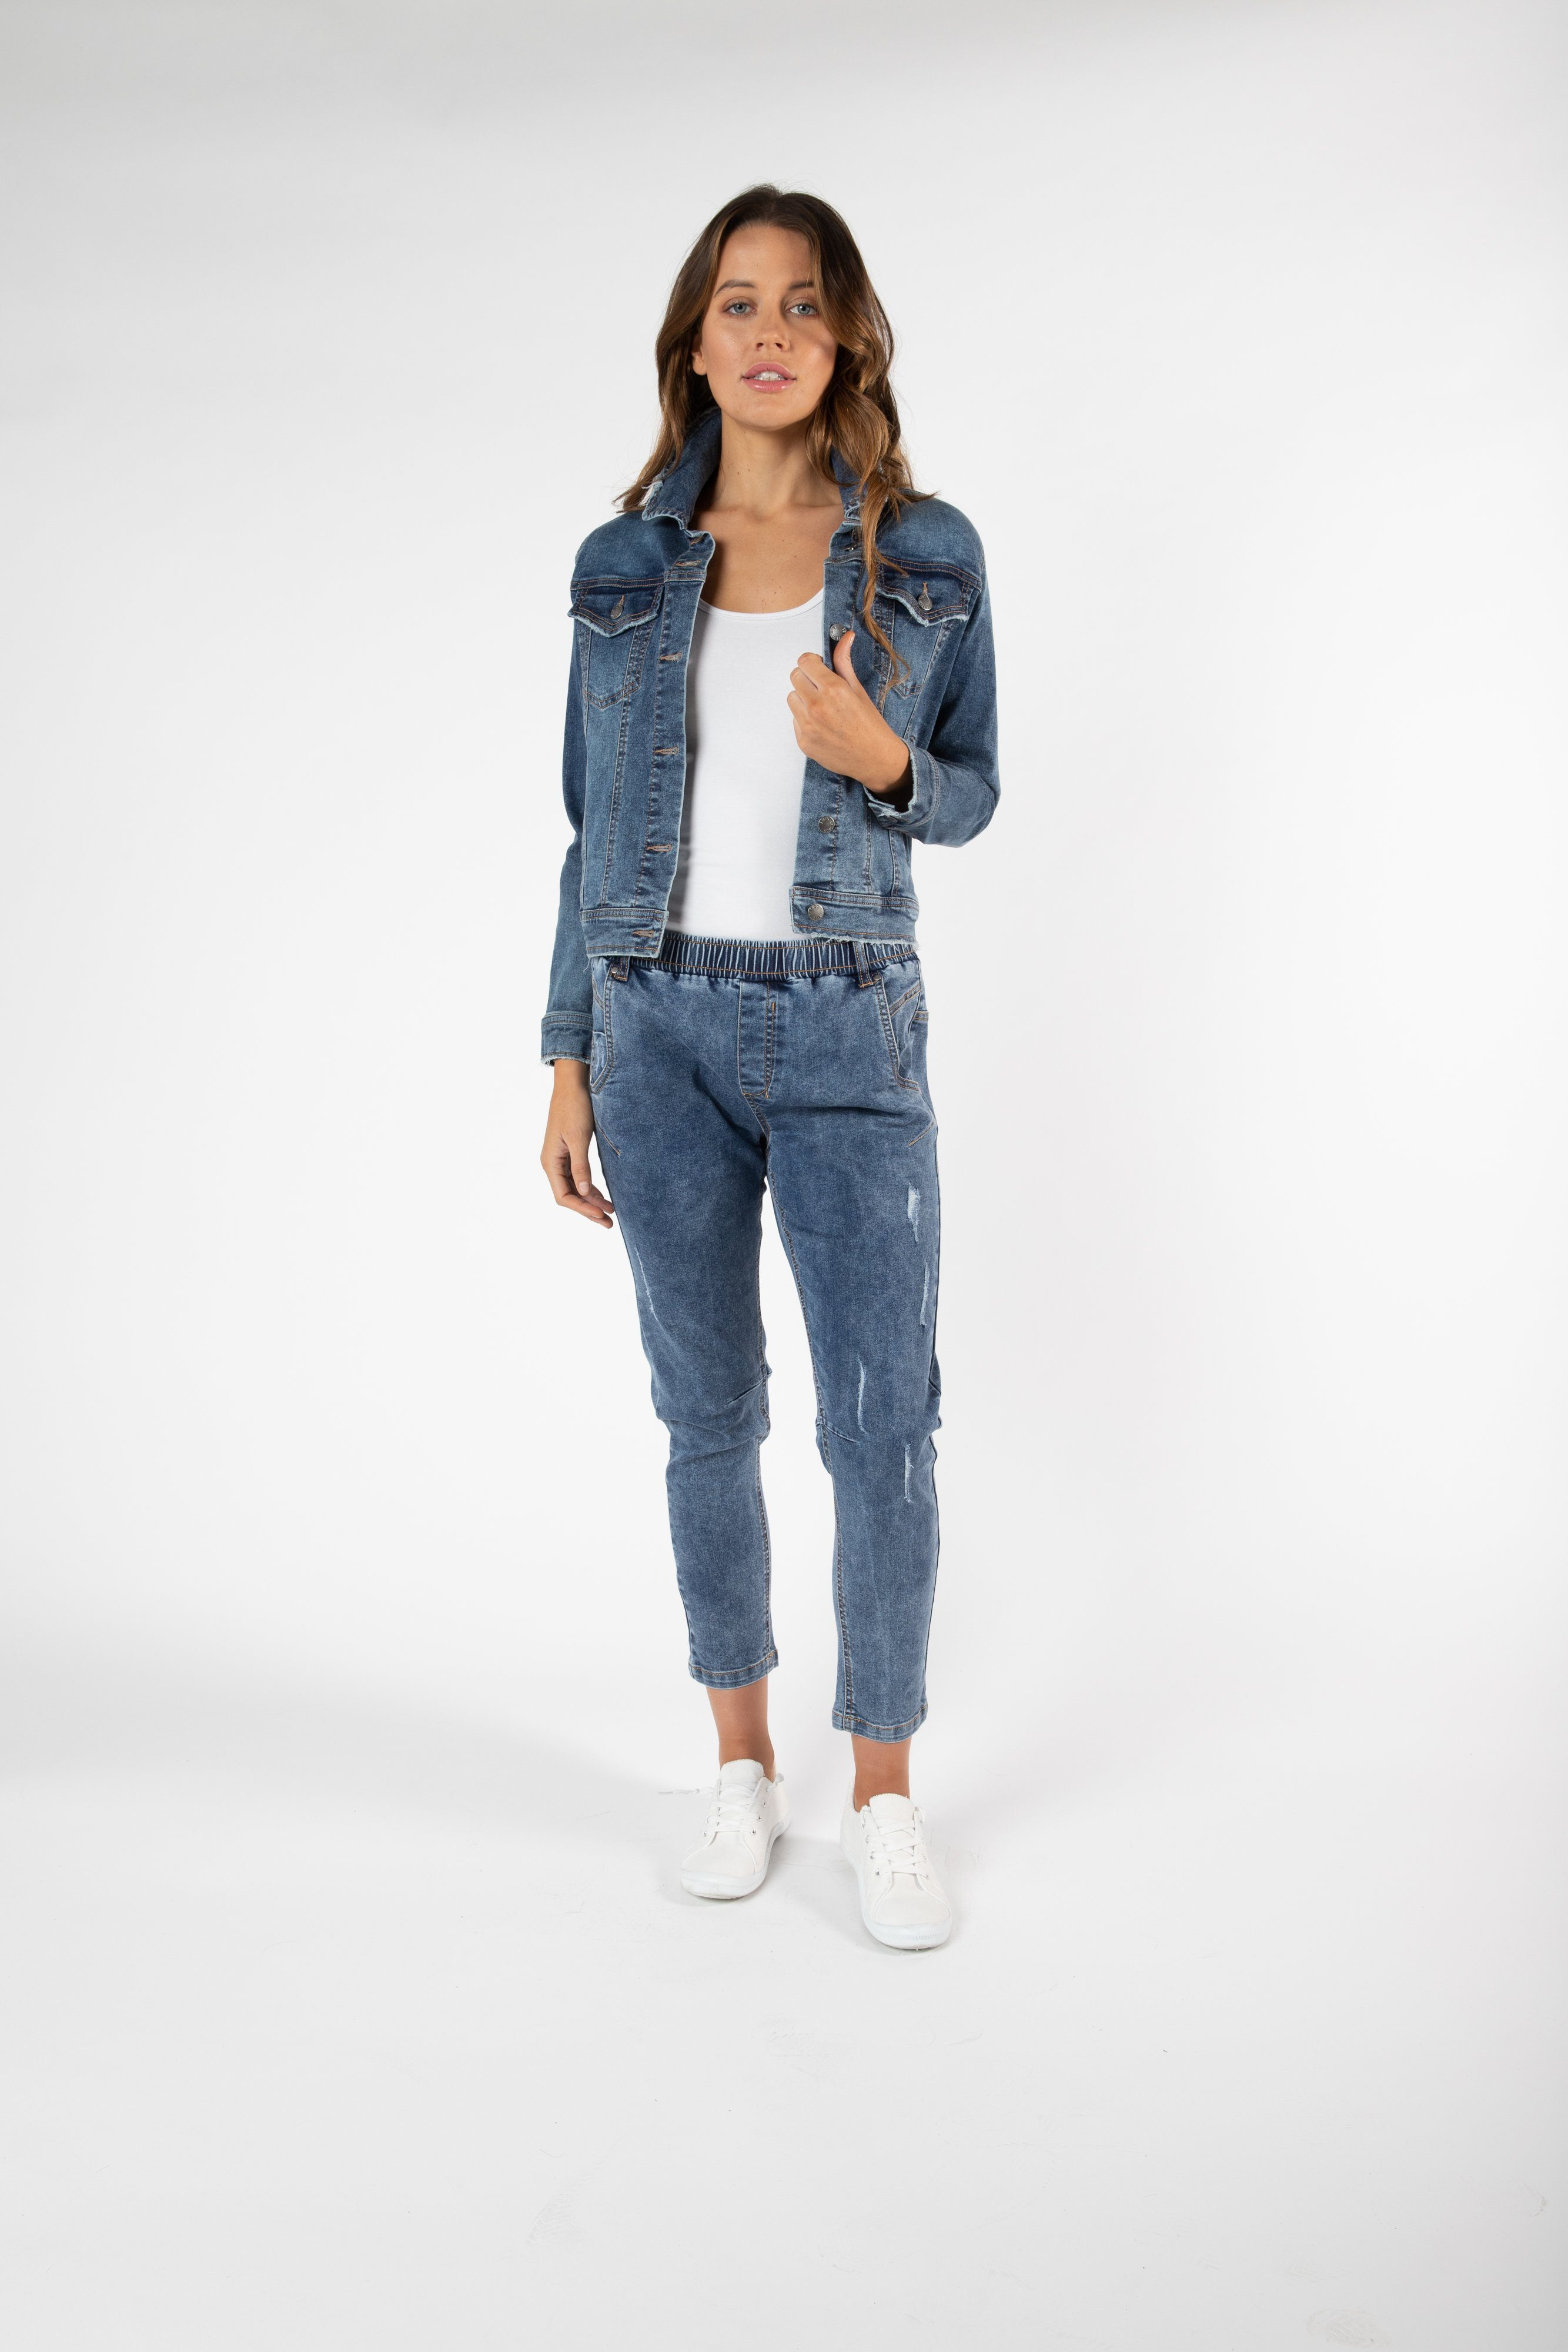 Betty Basics - Casey Denim Jacket - Dark Blue Womens Betty Basics